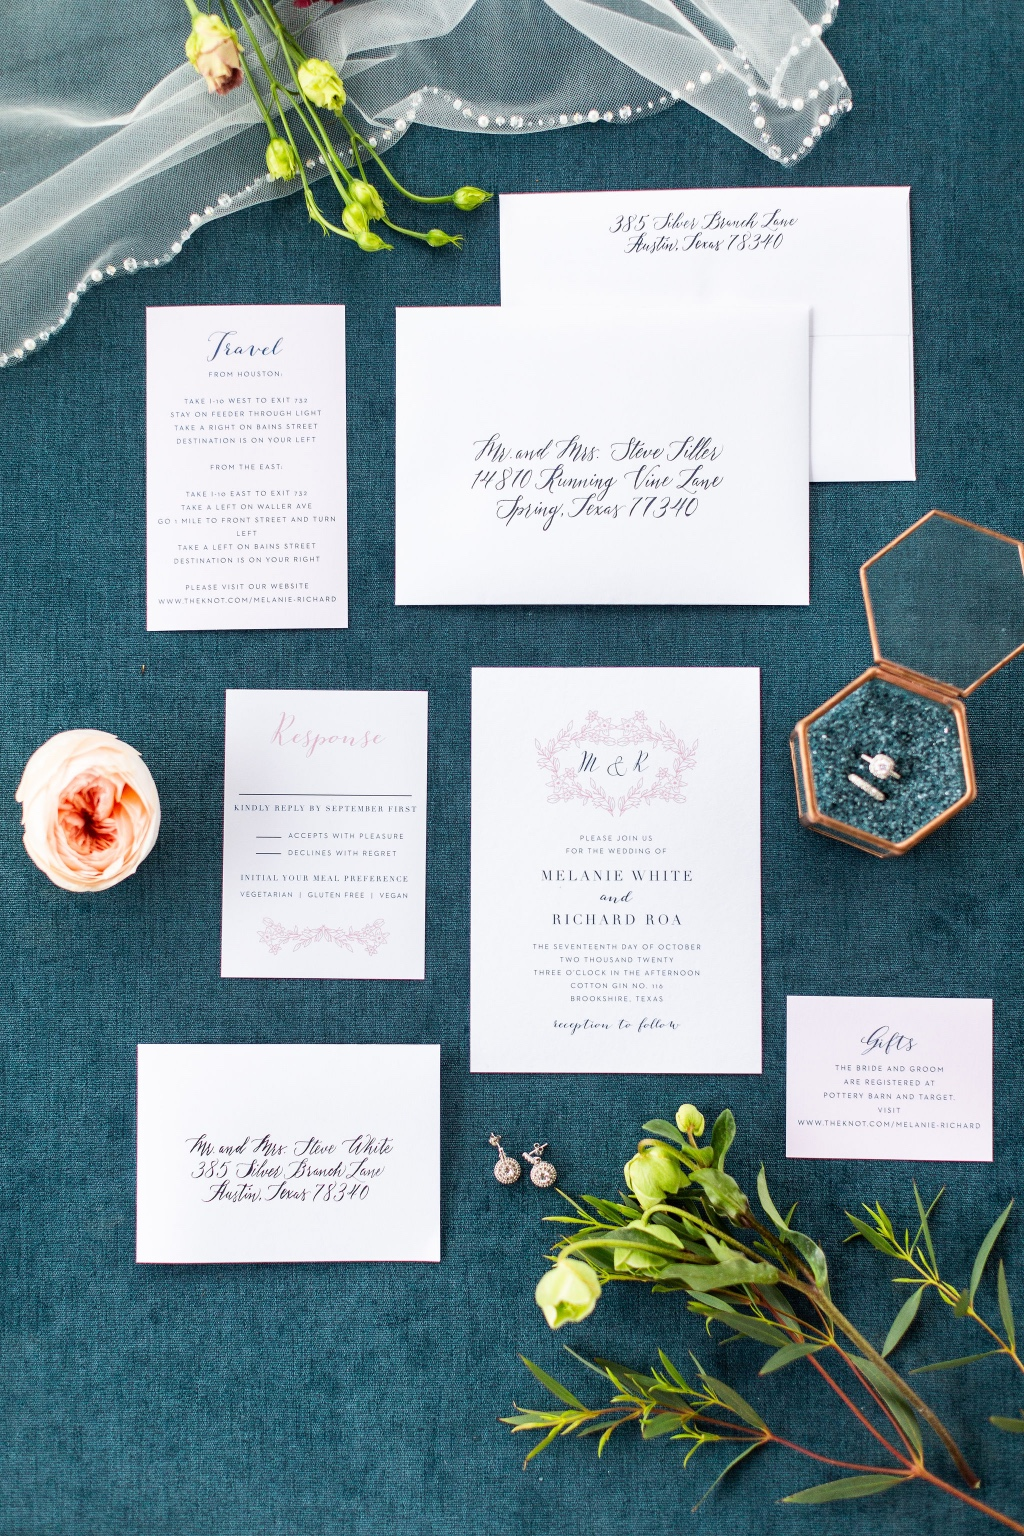 We are absolutely loving this Floral Heart Wedding Invitation Suite! Simple yet elegant, perfect for any wedding!